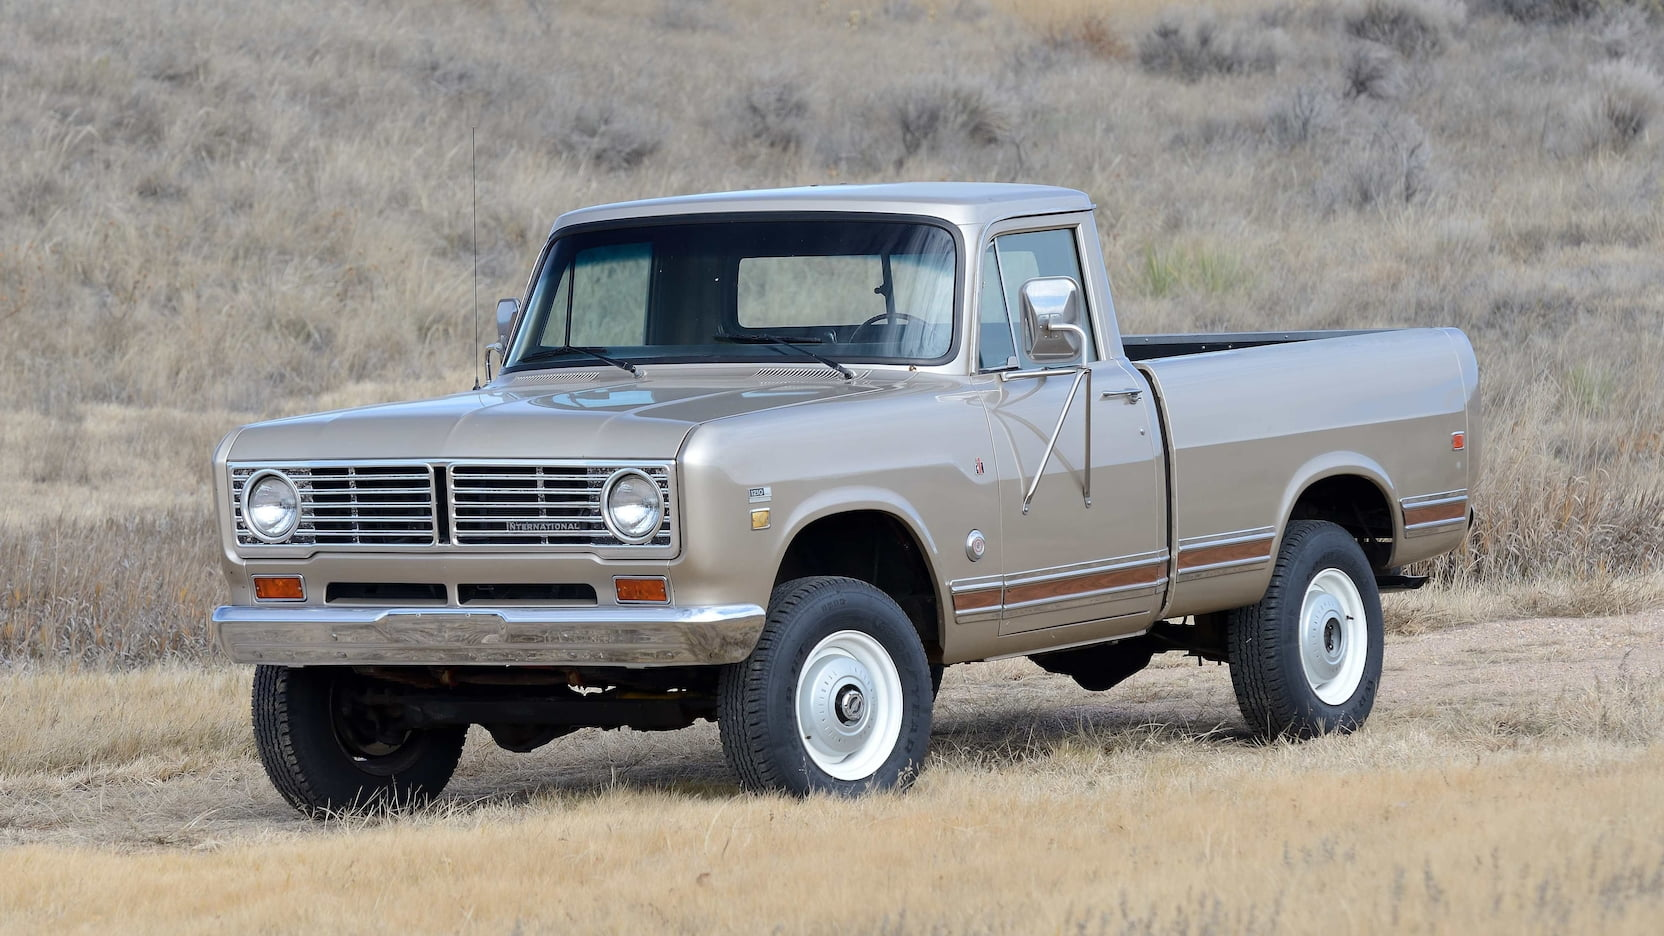 1972 International Harvester Pickup